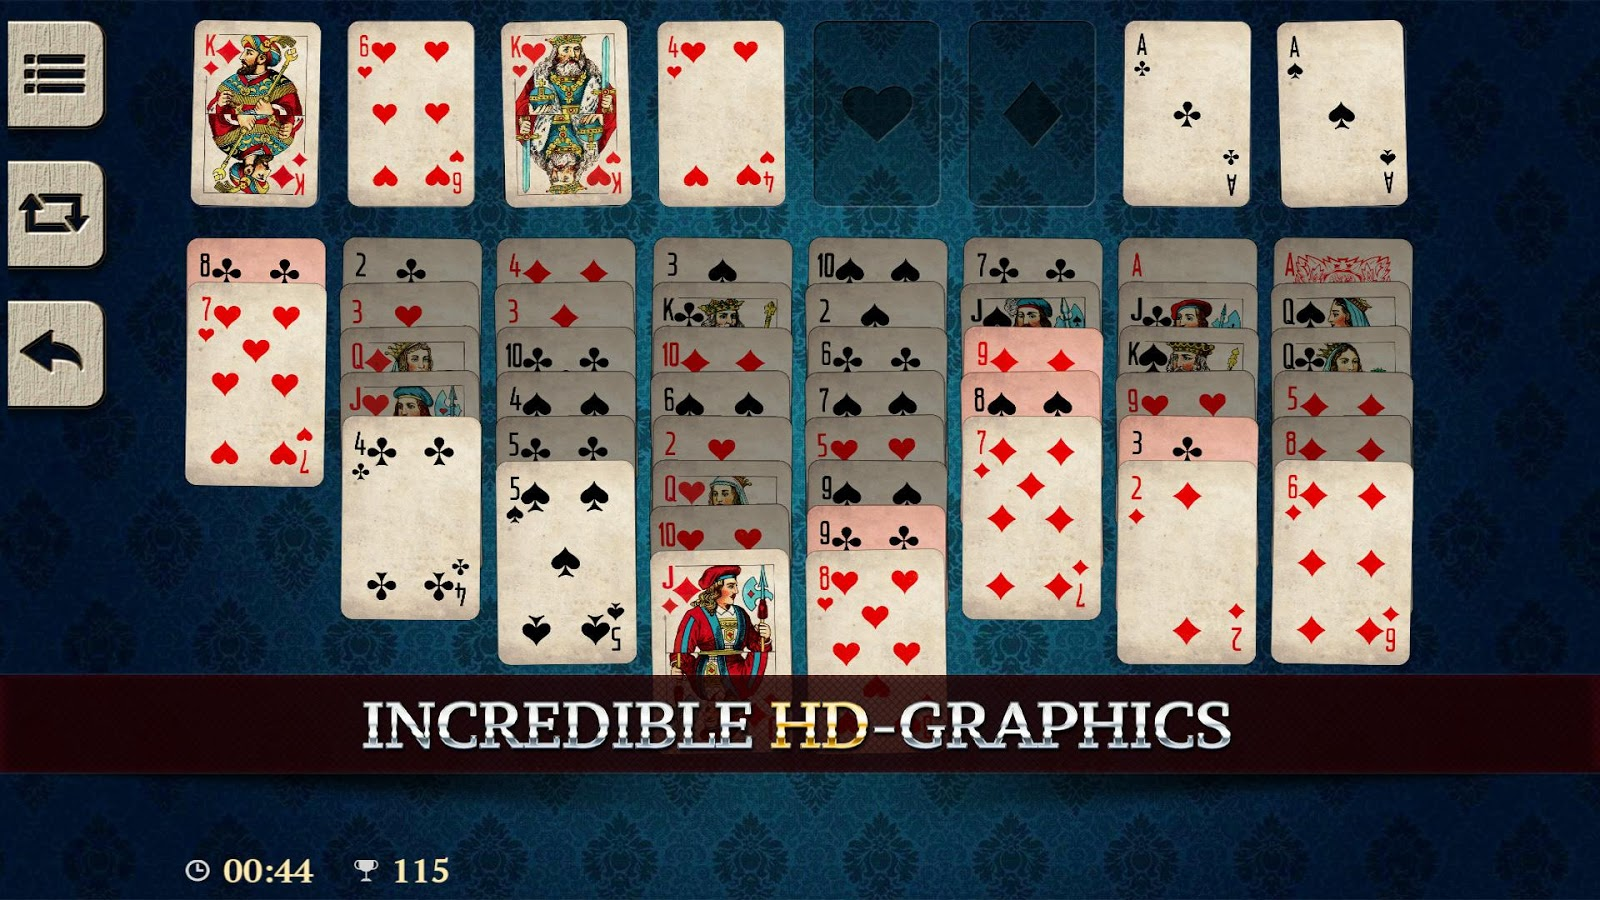 elite freecell solitaire 121 apk download android card